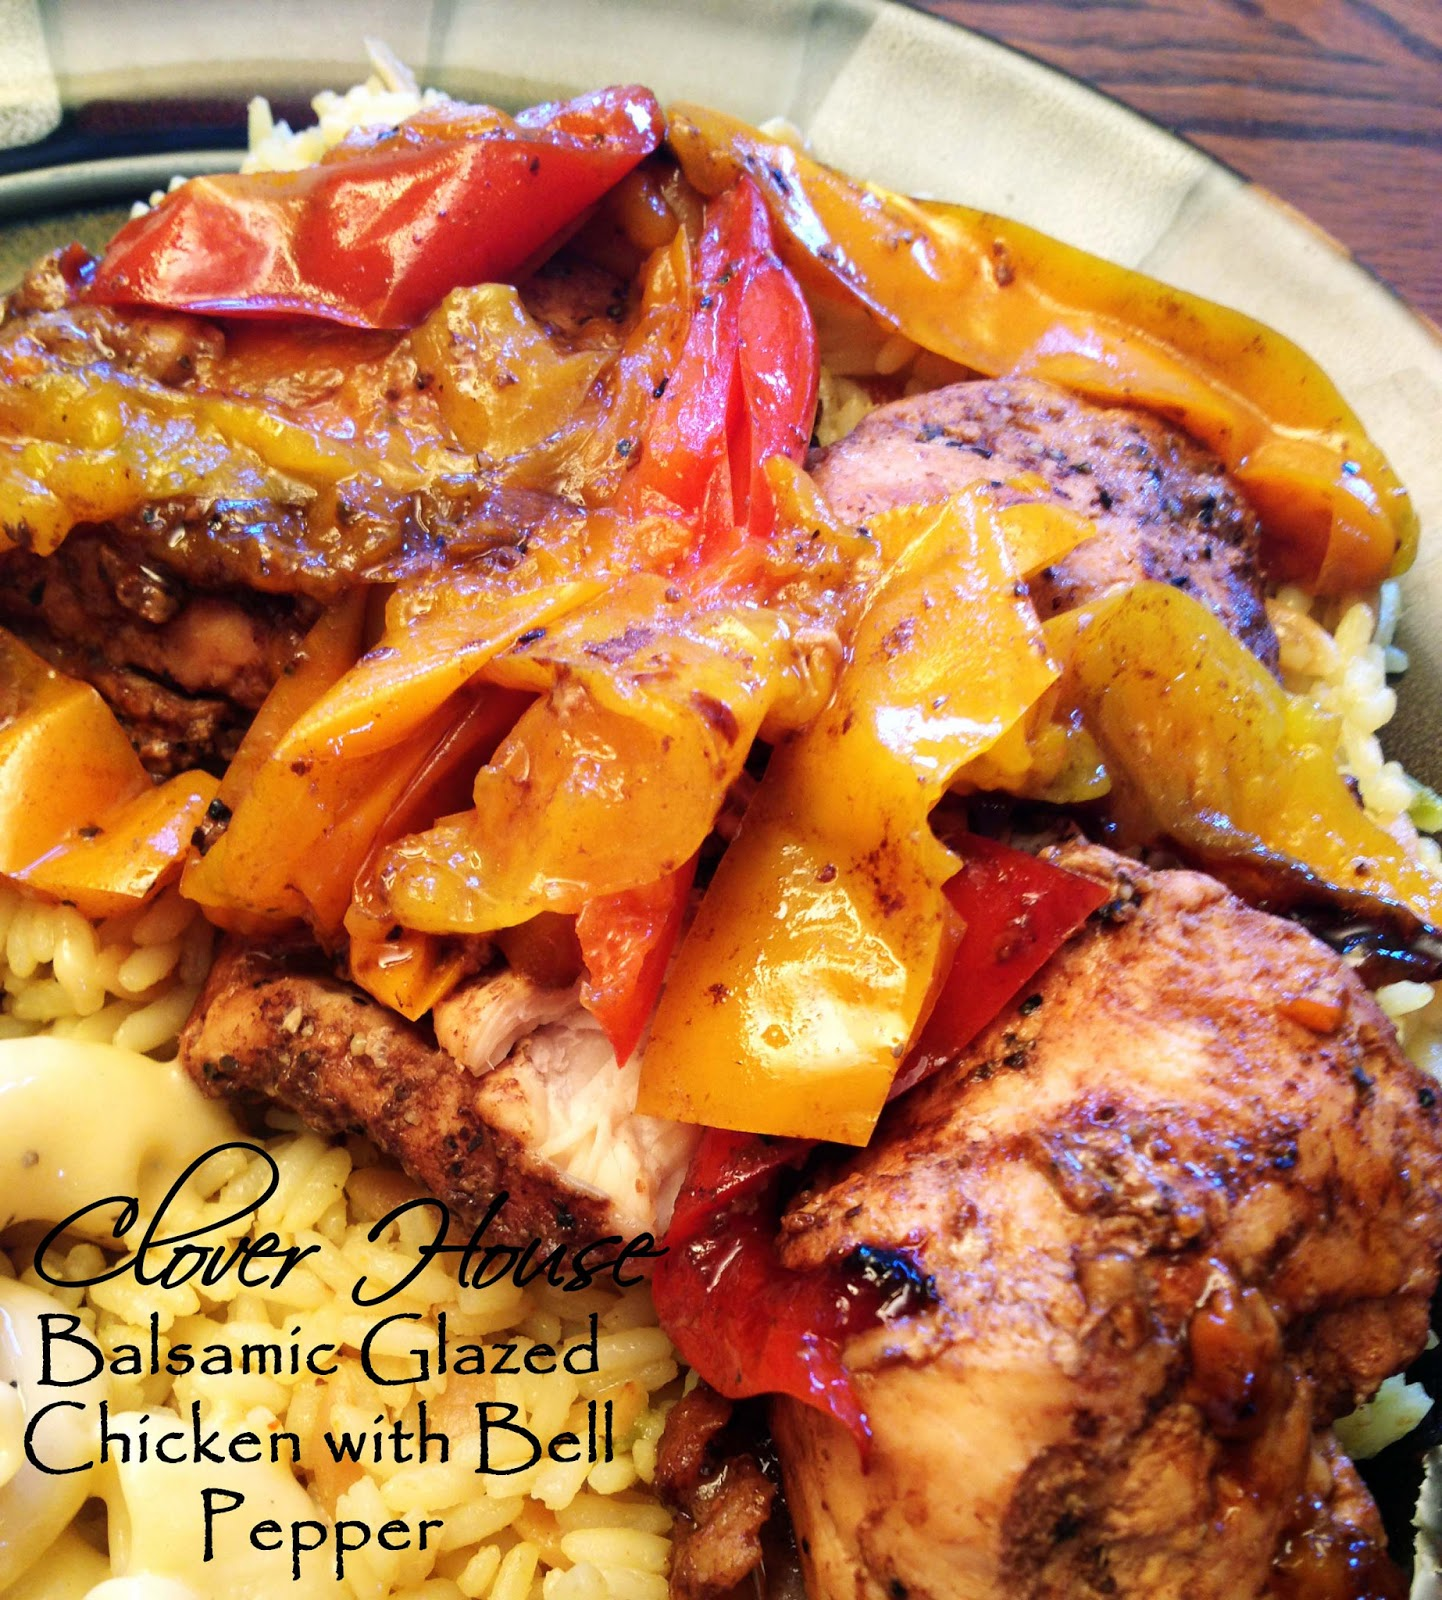 ... instead of a house project. Balsamic glazed chicken with bell peppers